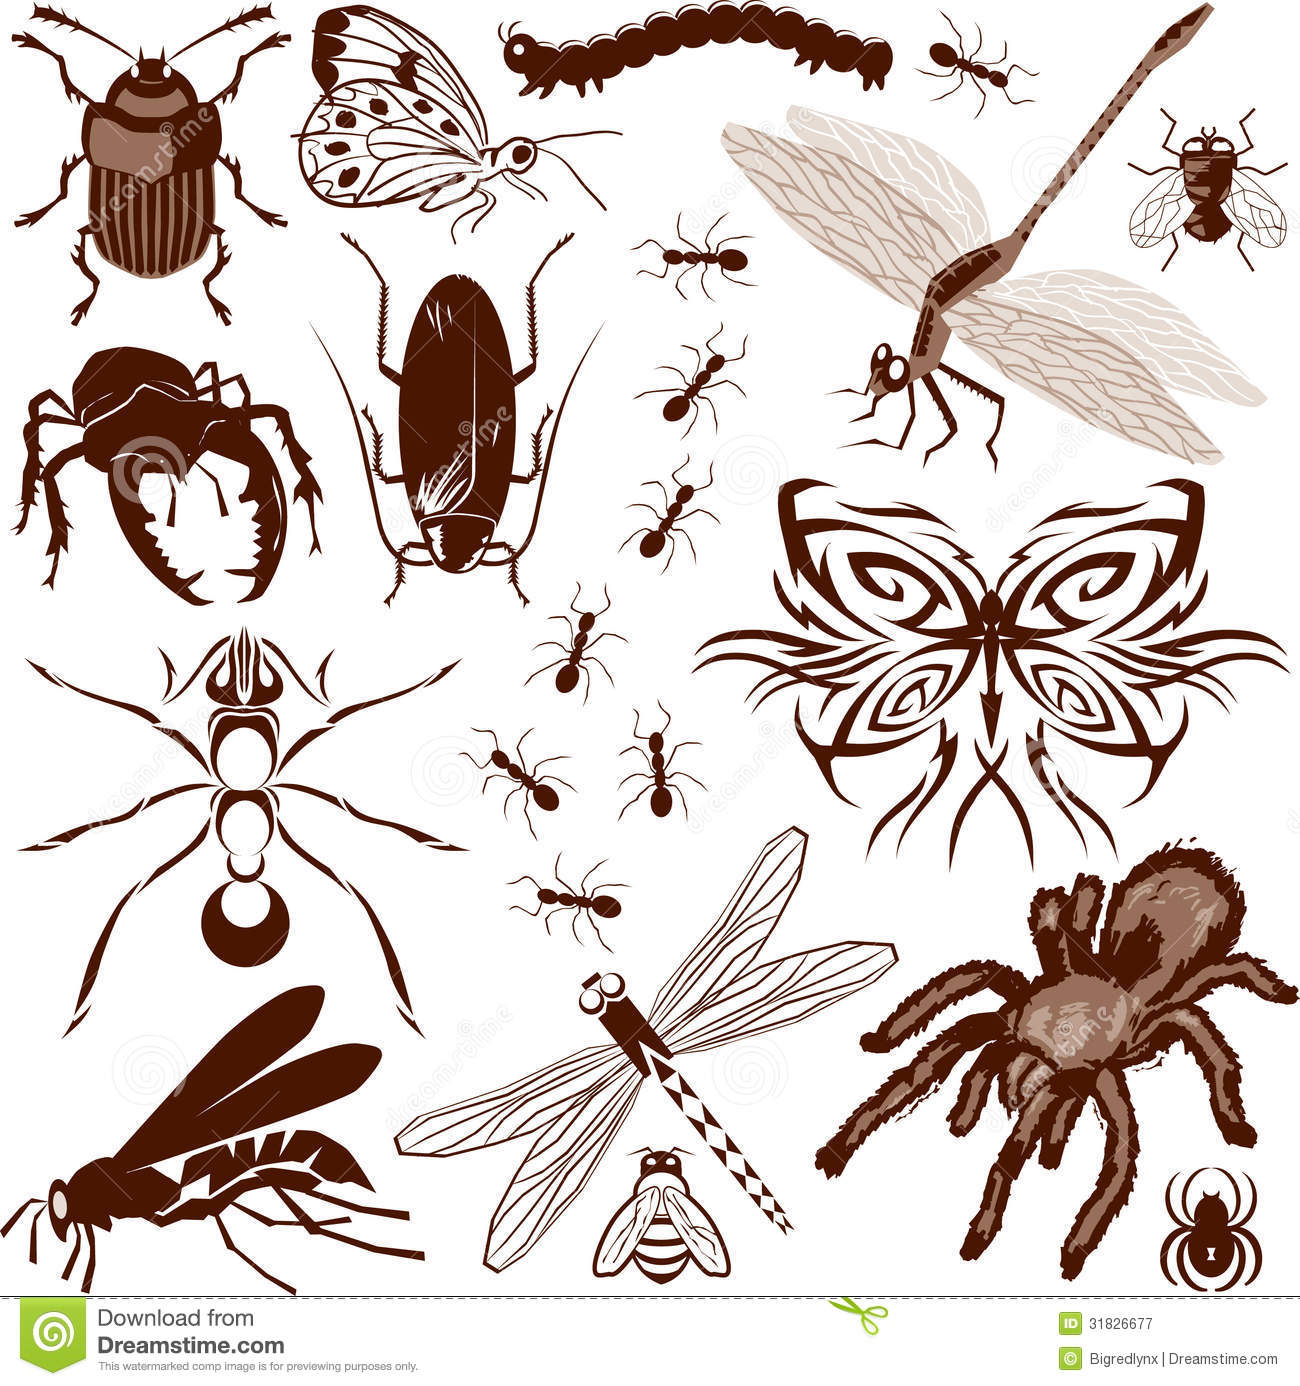 Creepy Crawlers Stock Illustrations.